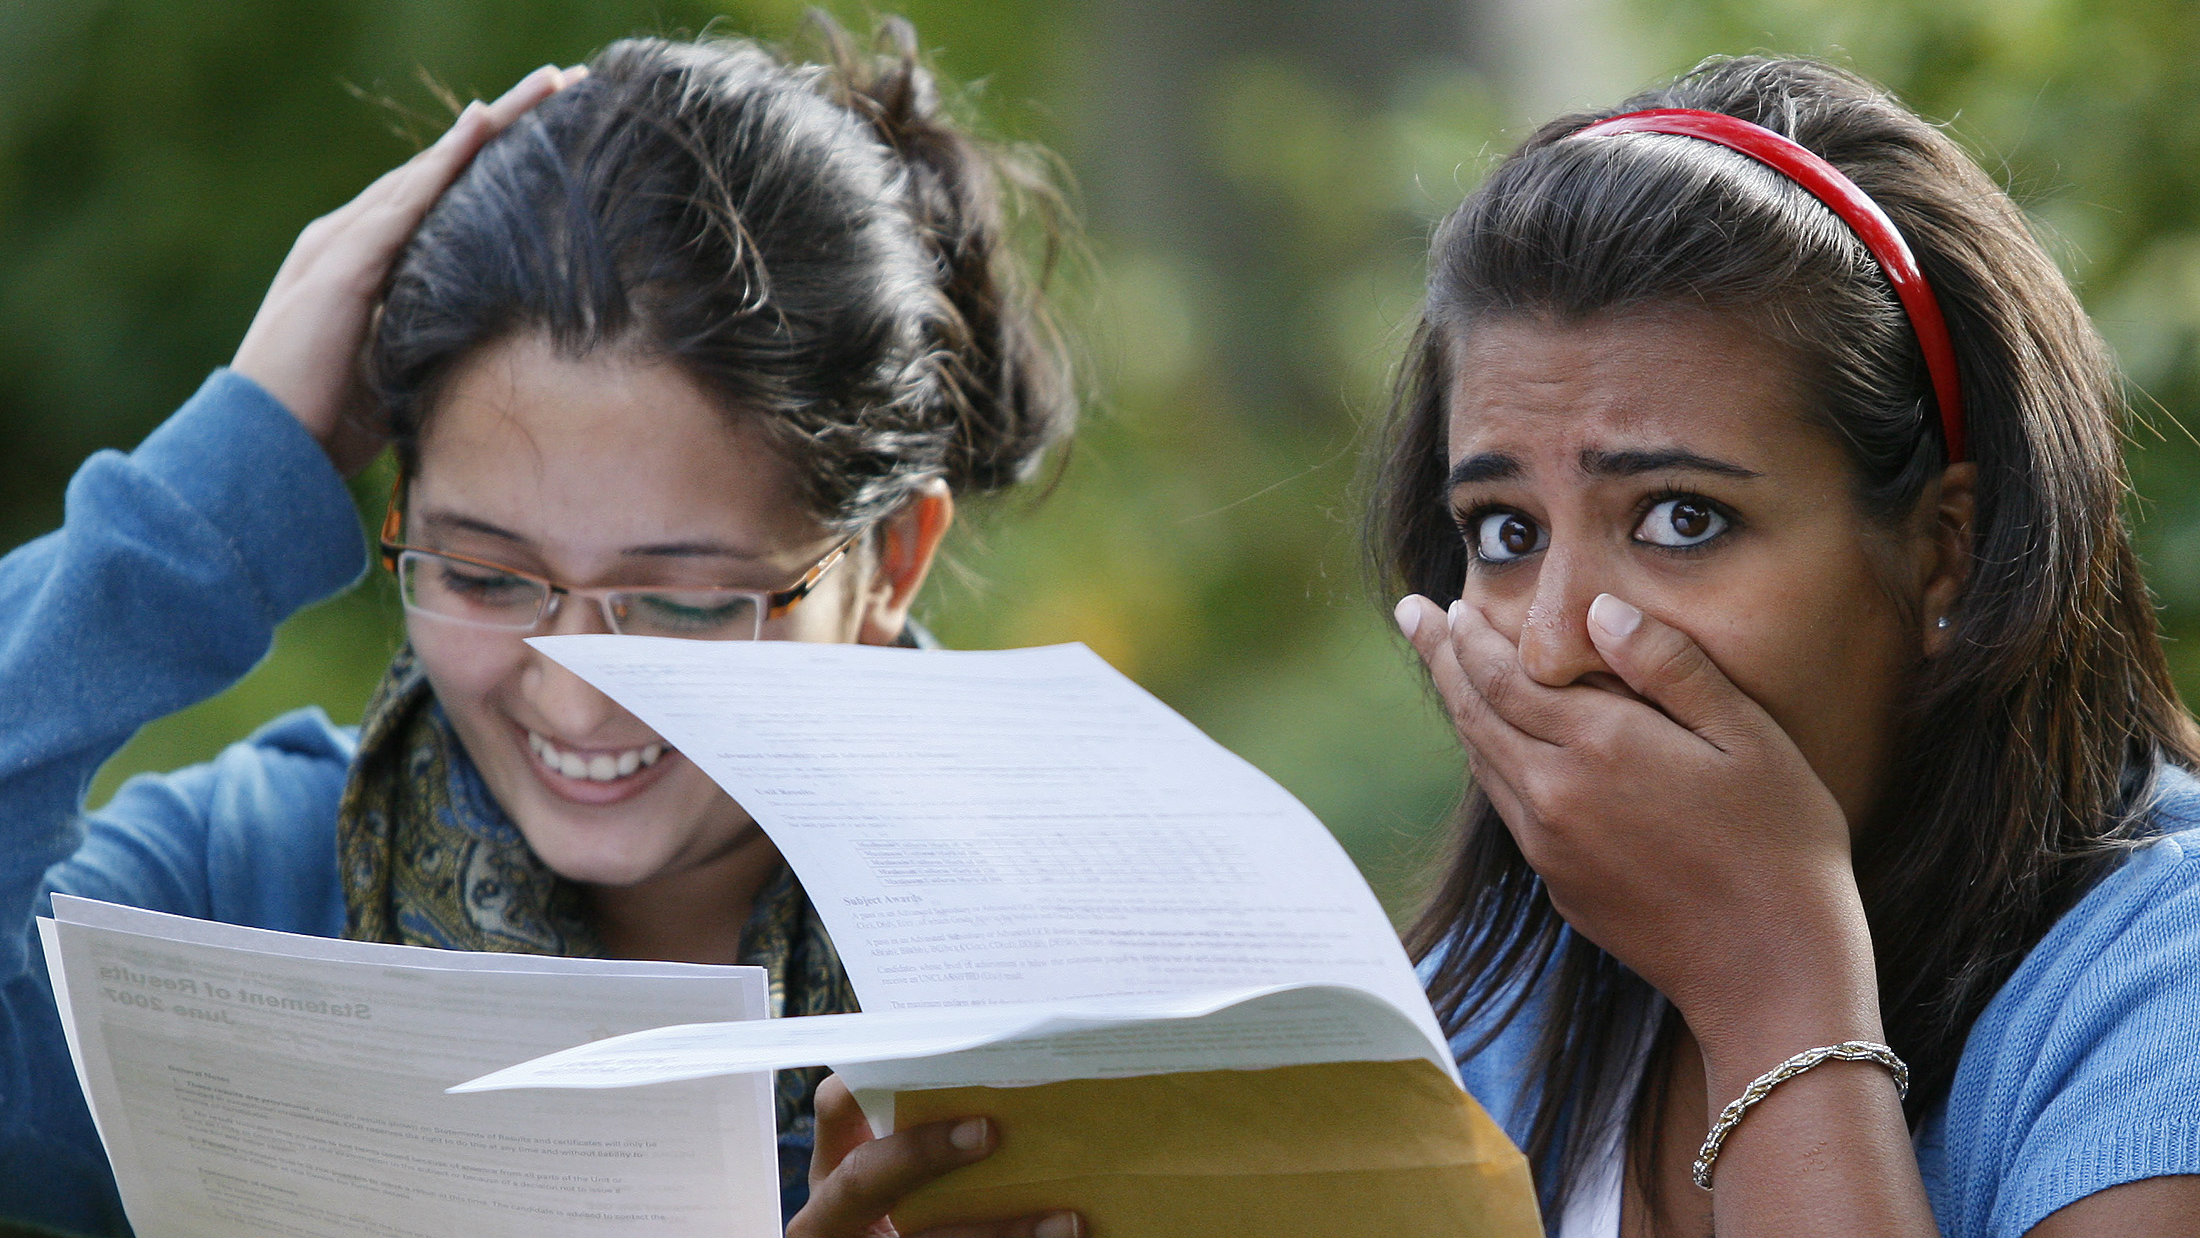 Students looking at their exam results